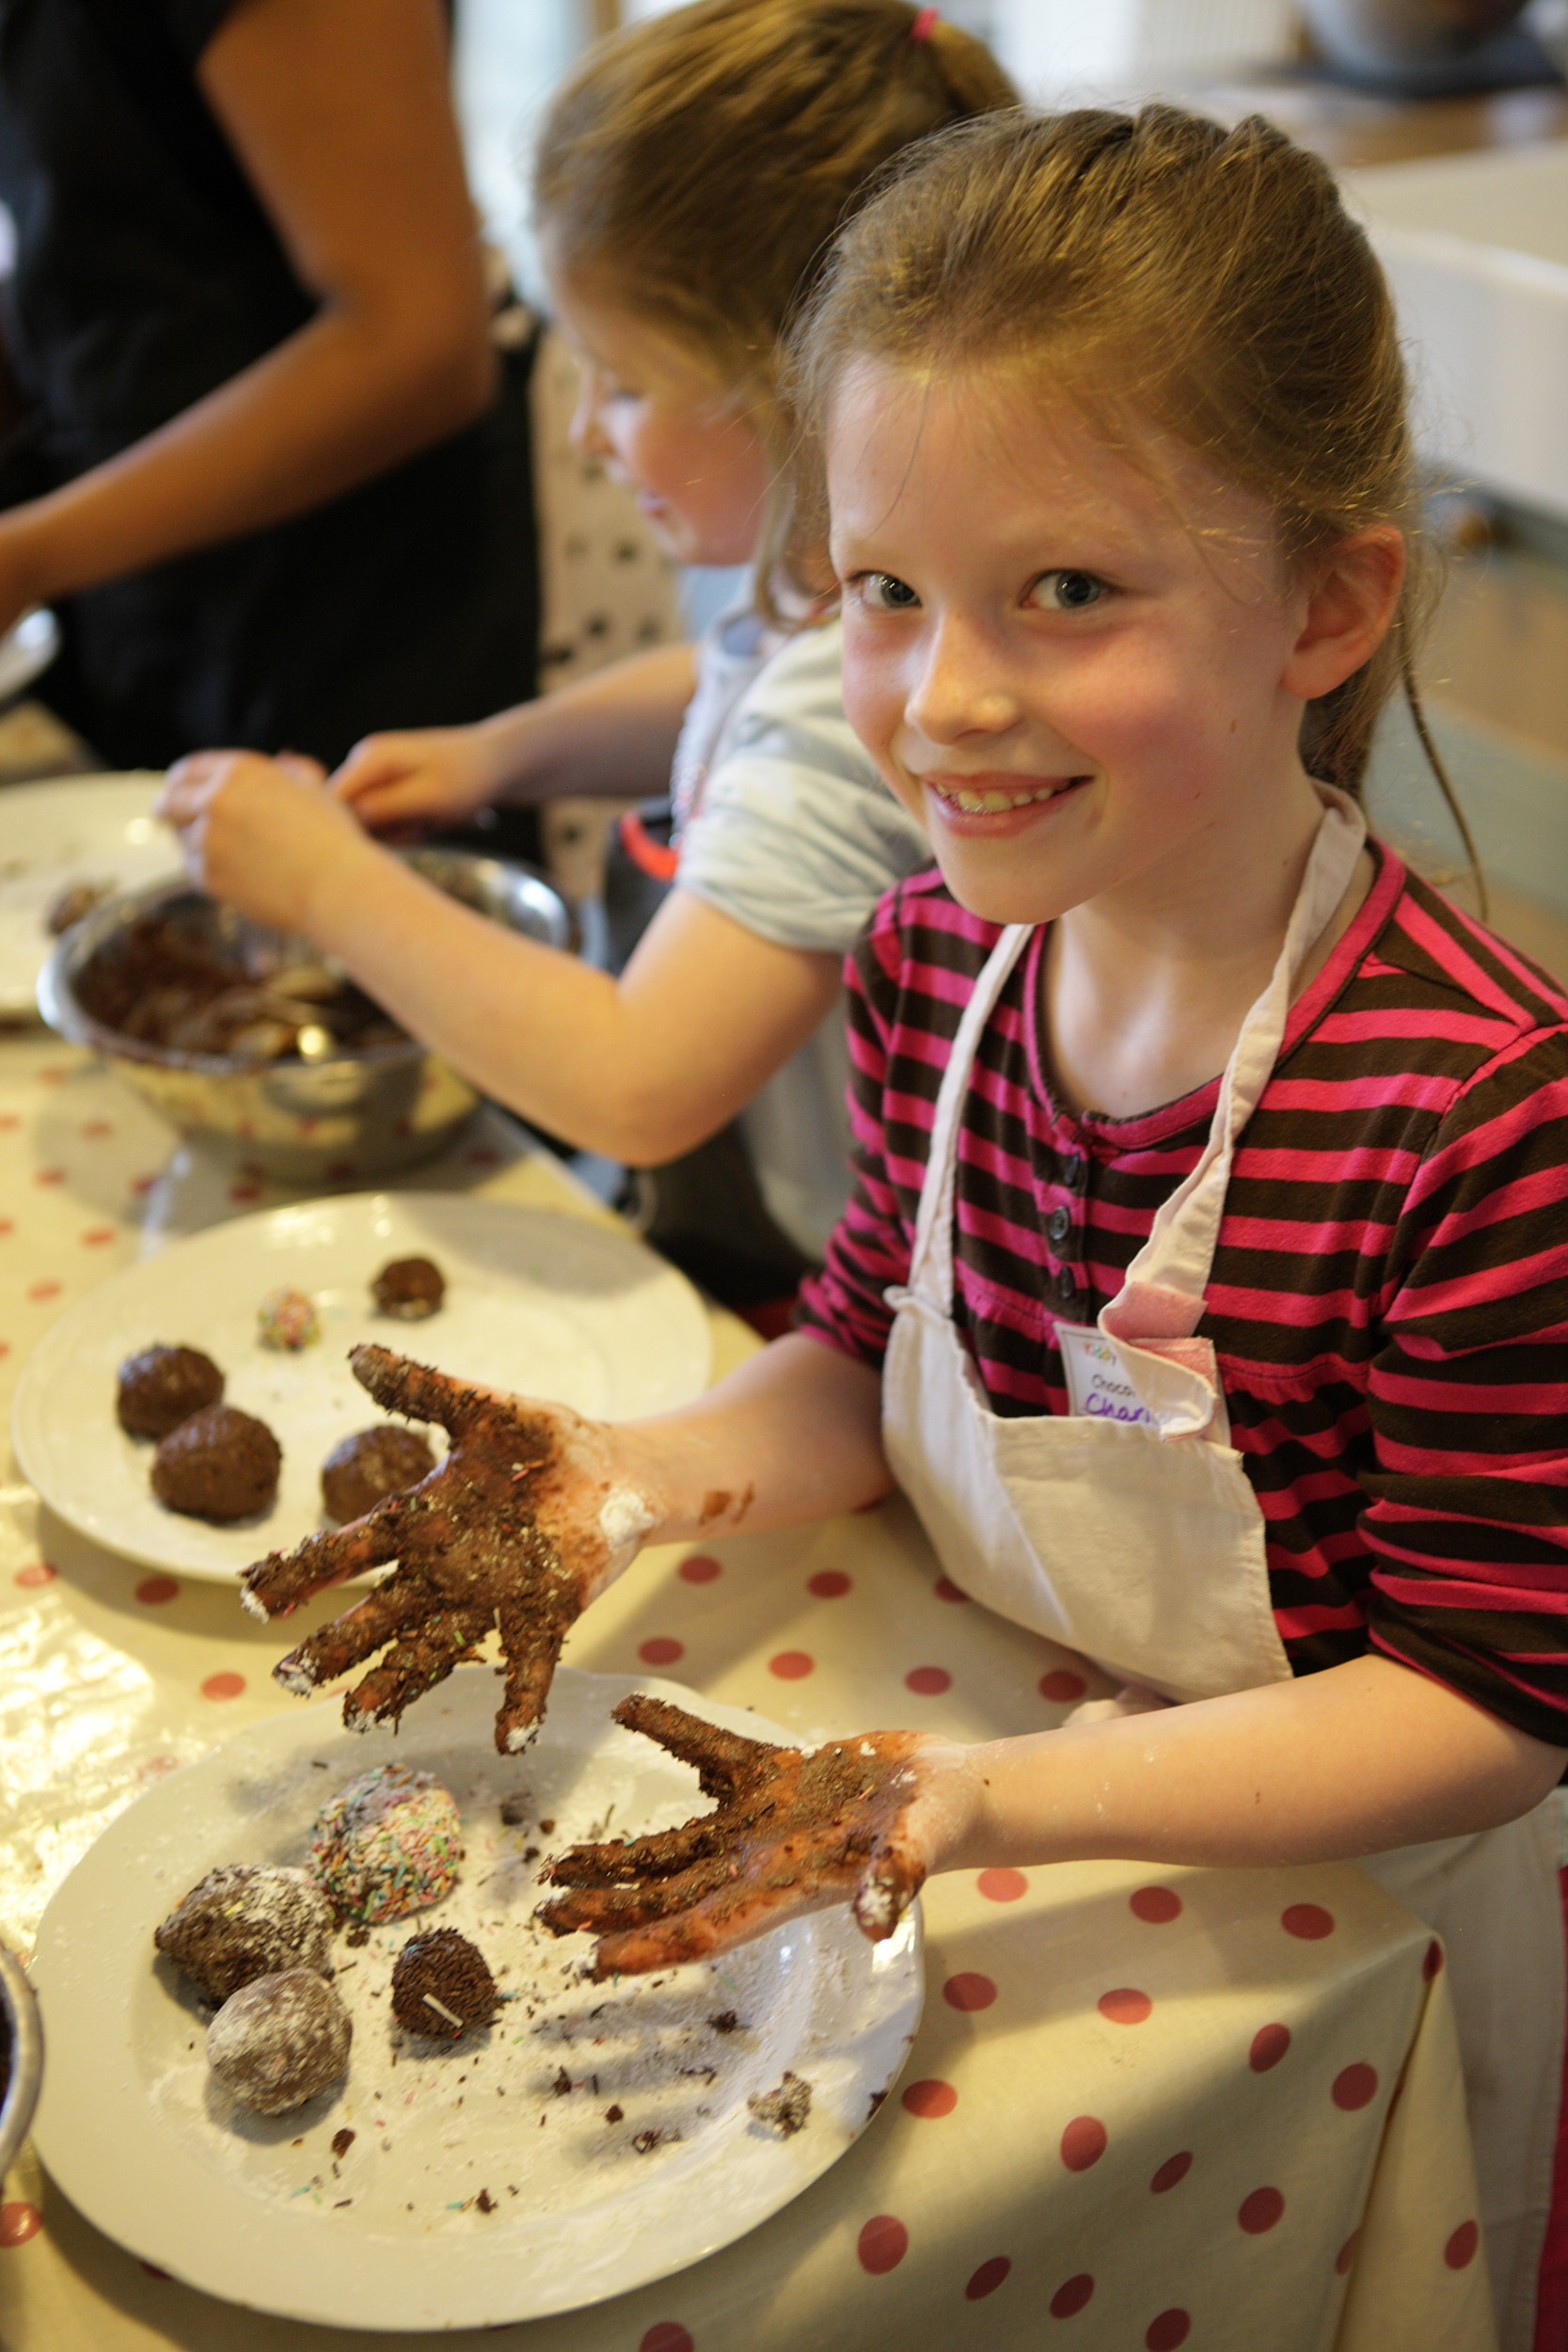 Best ideas about Making Stuff For Kids . Save or Pin Kids cookery Parties Now.